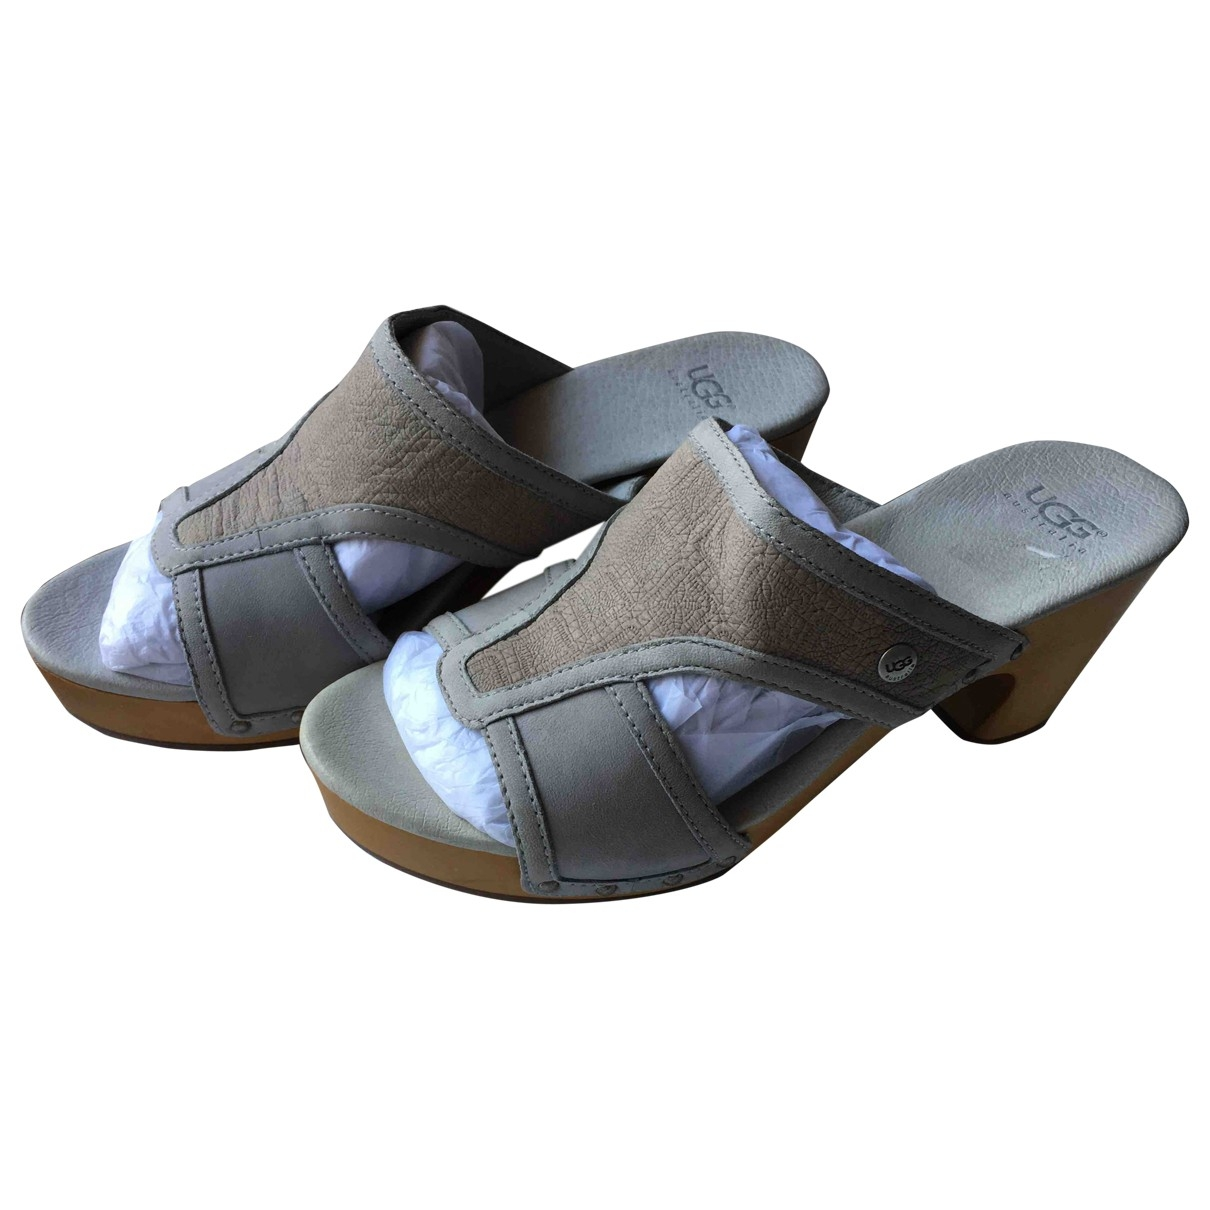 Ugg \N Grey Leather Mules & Clogs for Women 7 US